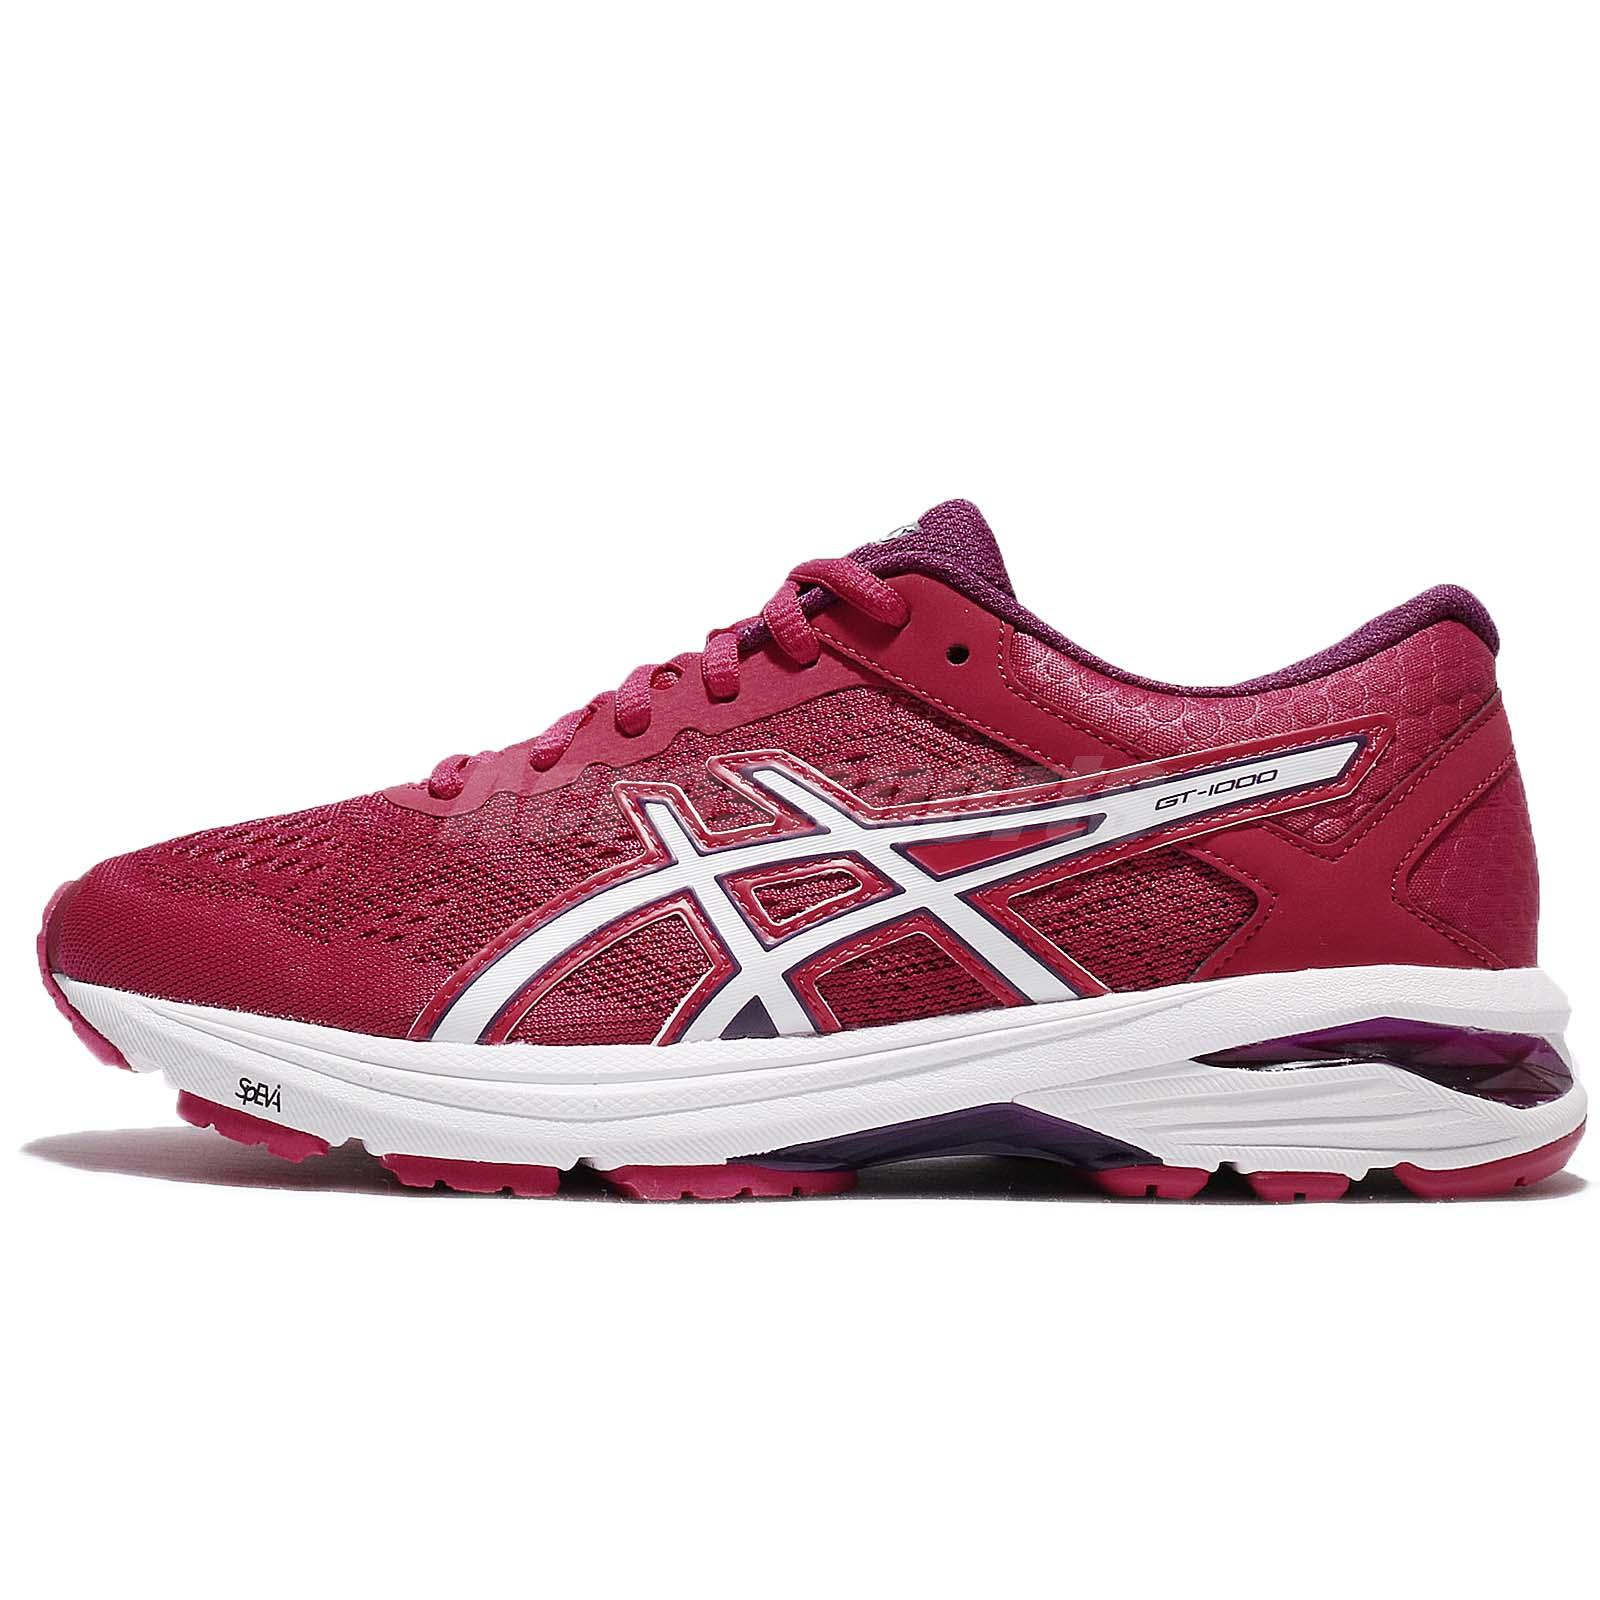 Asics GT 1000 6 Cosmo Pink White Women Running Shoes Sneakers T7A9N 2001